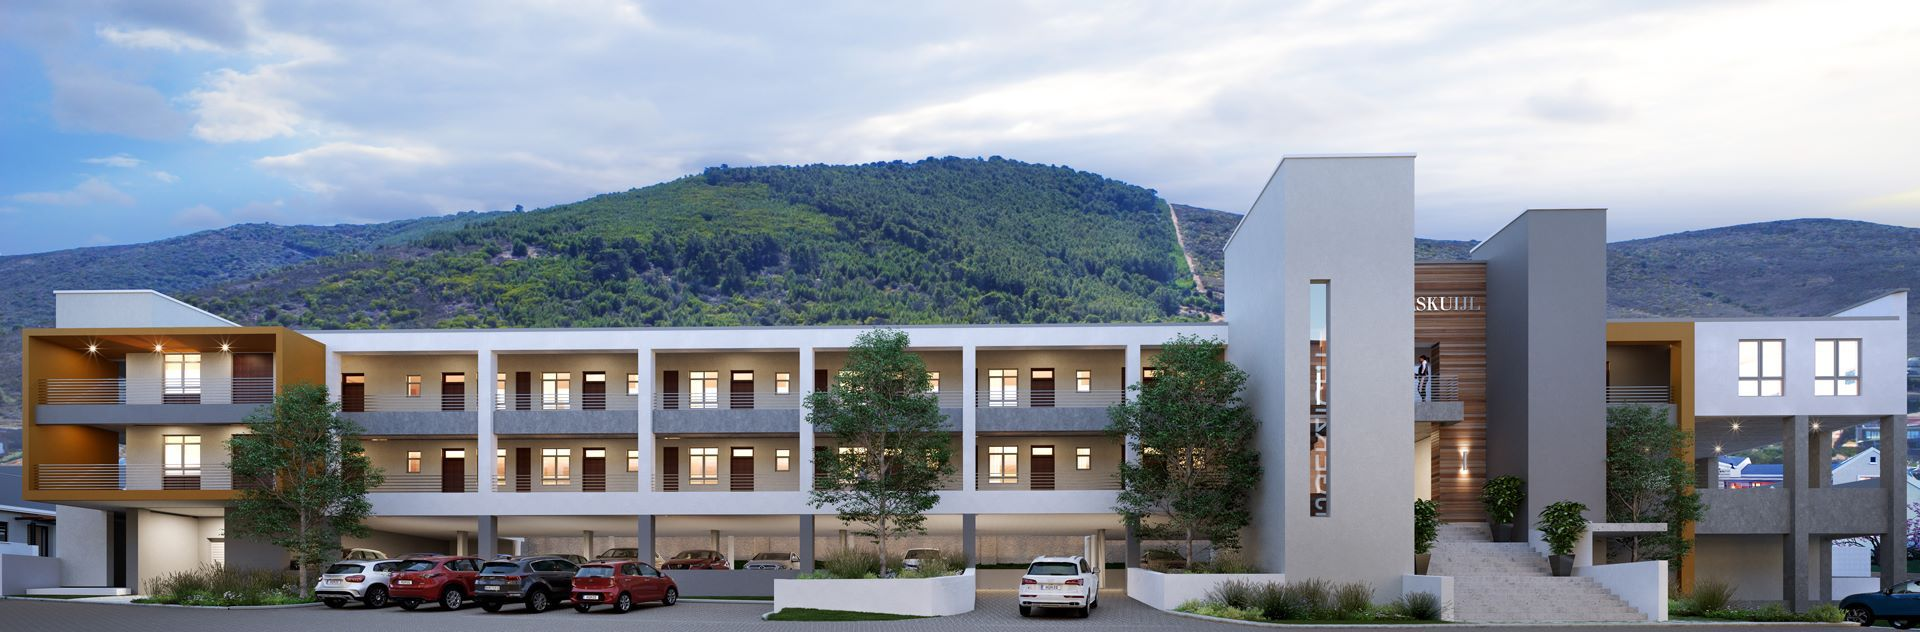 Apartment in Plattekloof